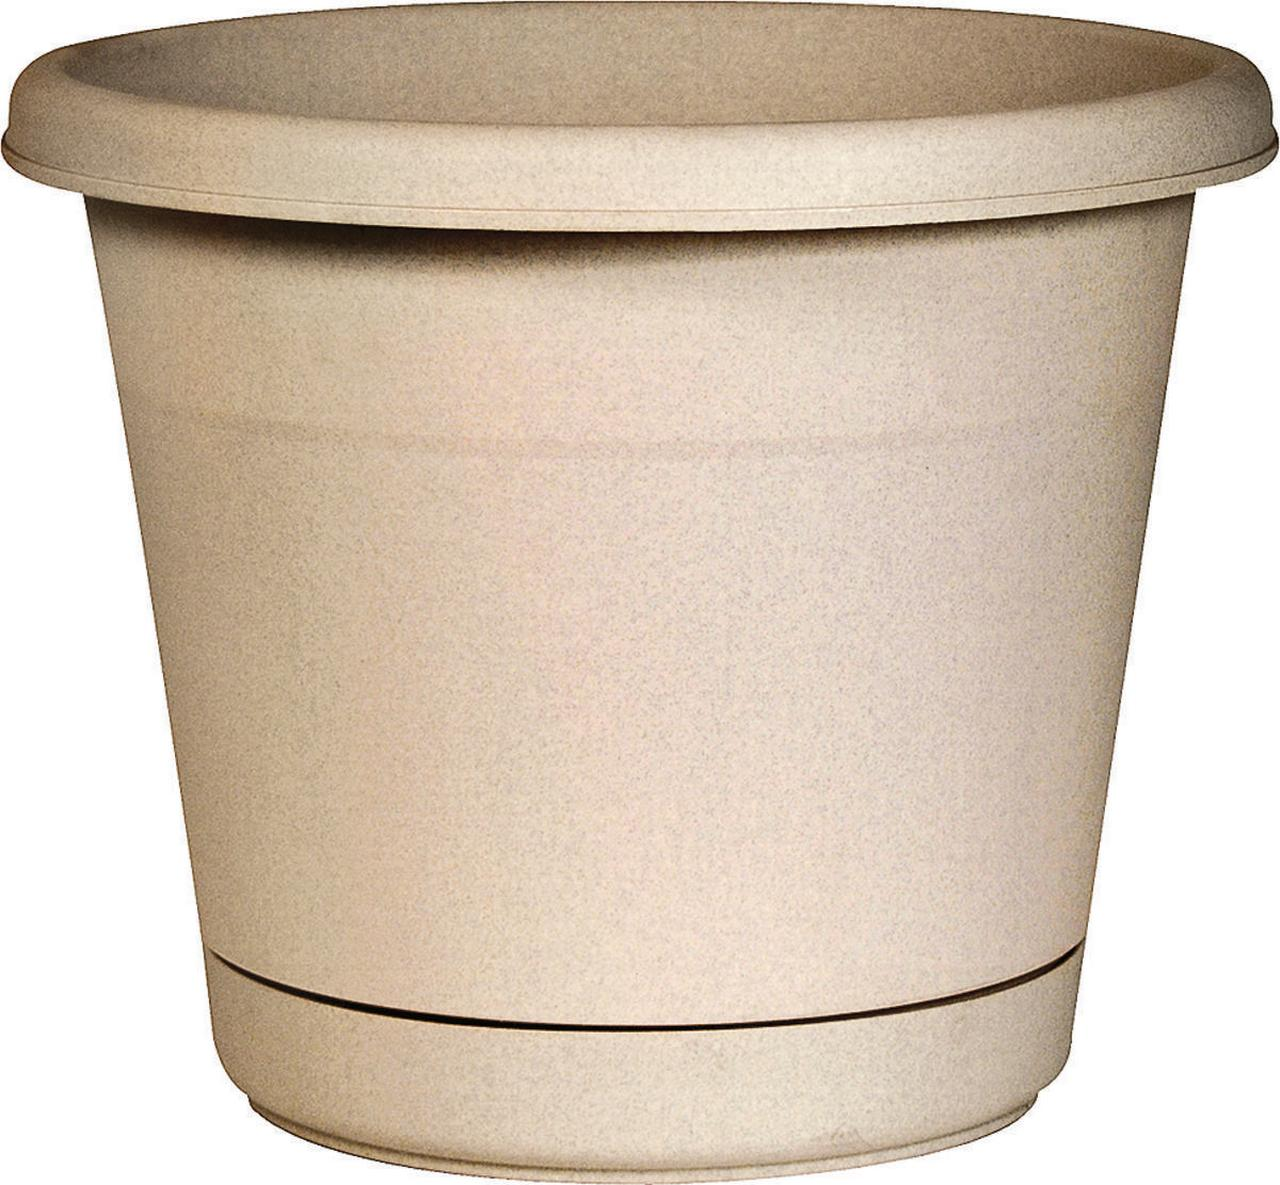 PLANTER/SAUCER ROLLED RIM 16IN